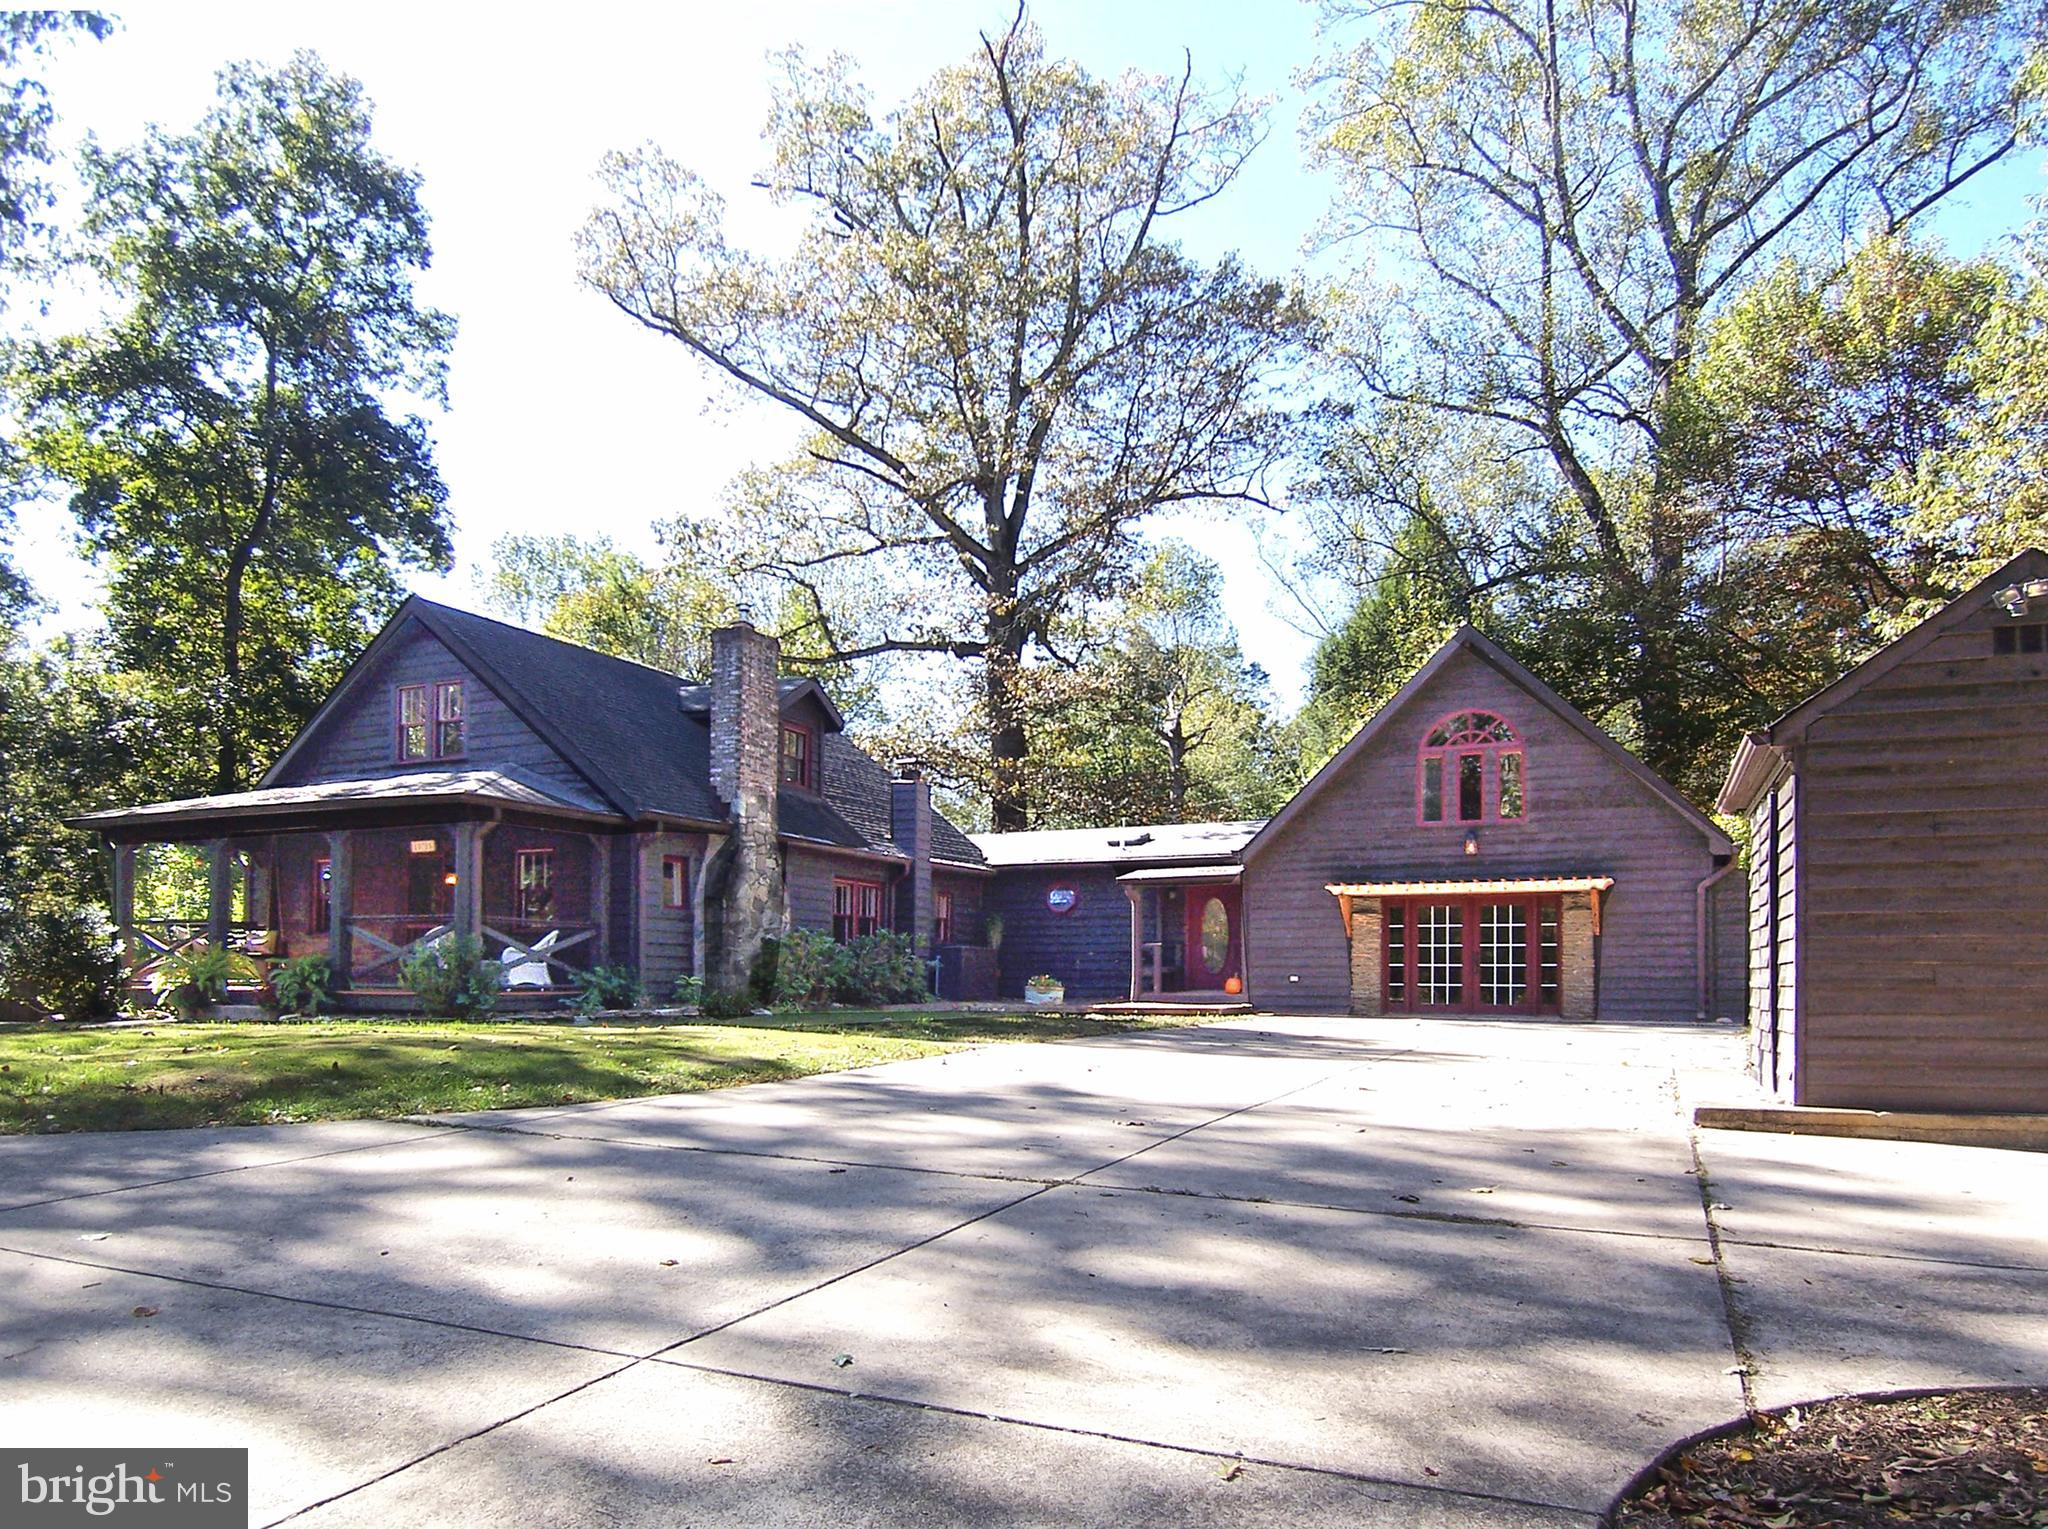 Charm, charm, charm! This turnkey, original 1939 expanded and remodeled Cedar and Log Home, offering